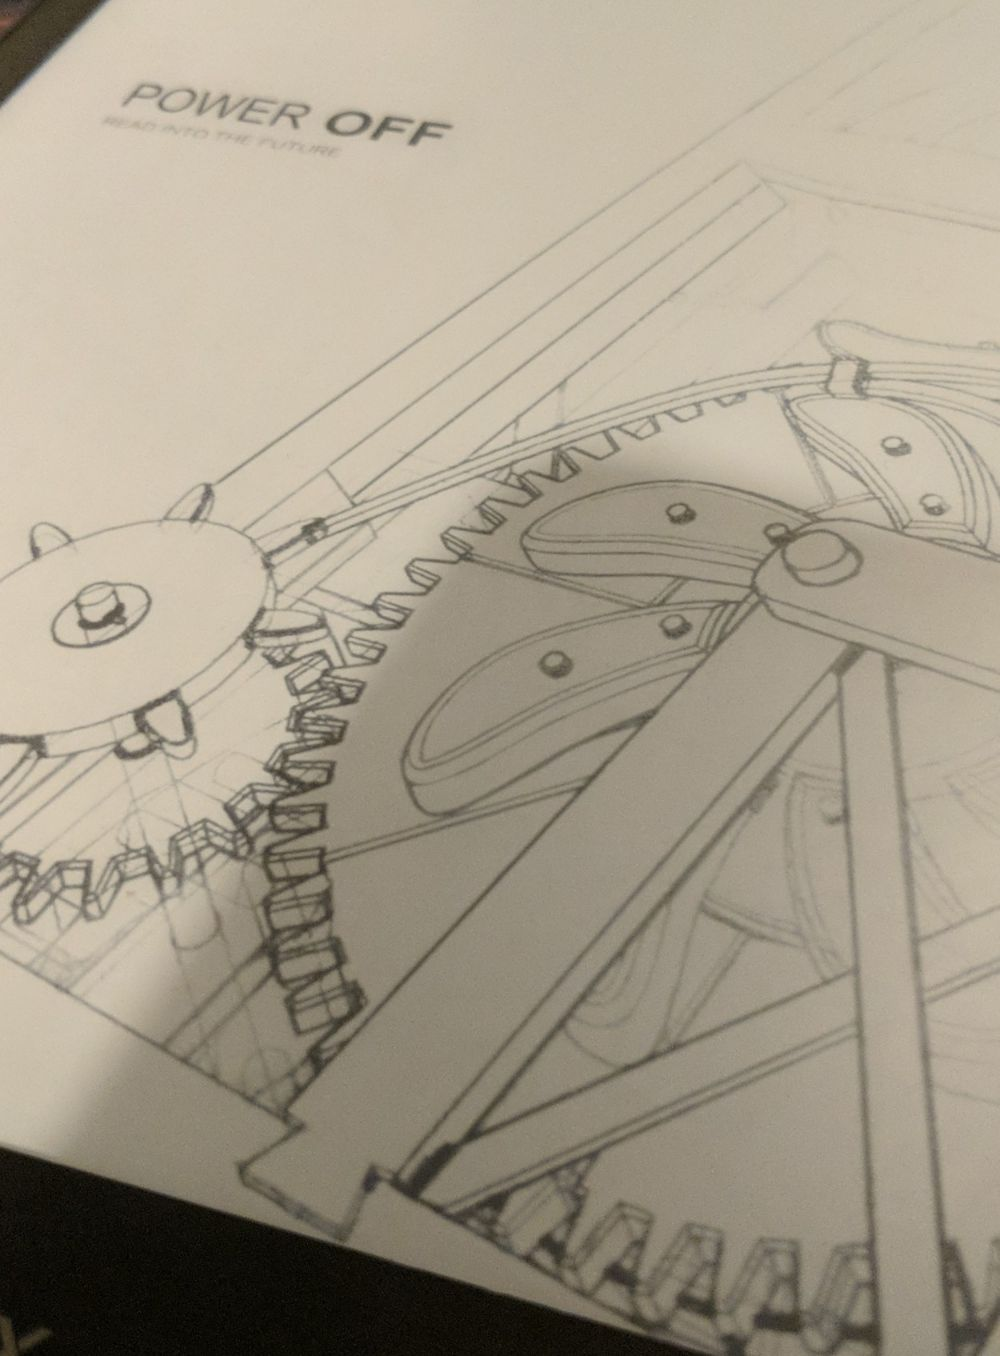 close up of a boox e-reader, in power off mode.